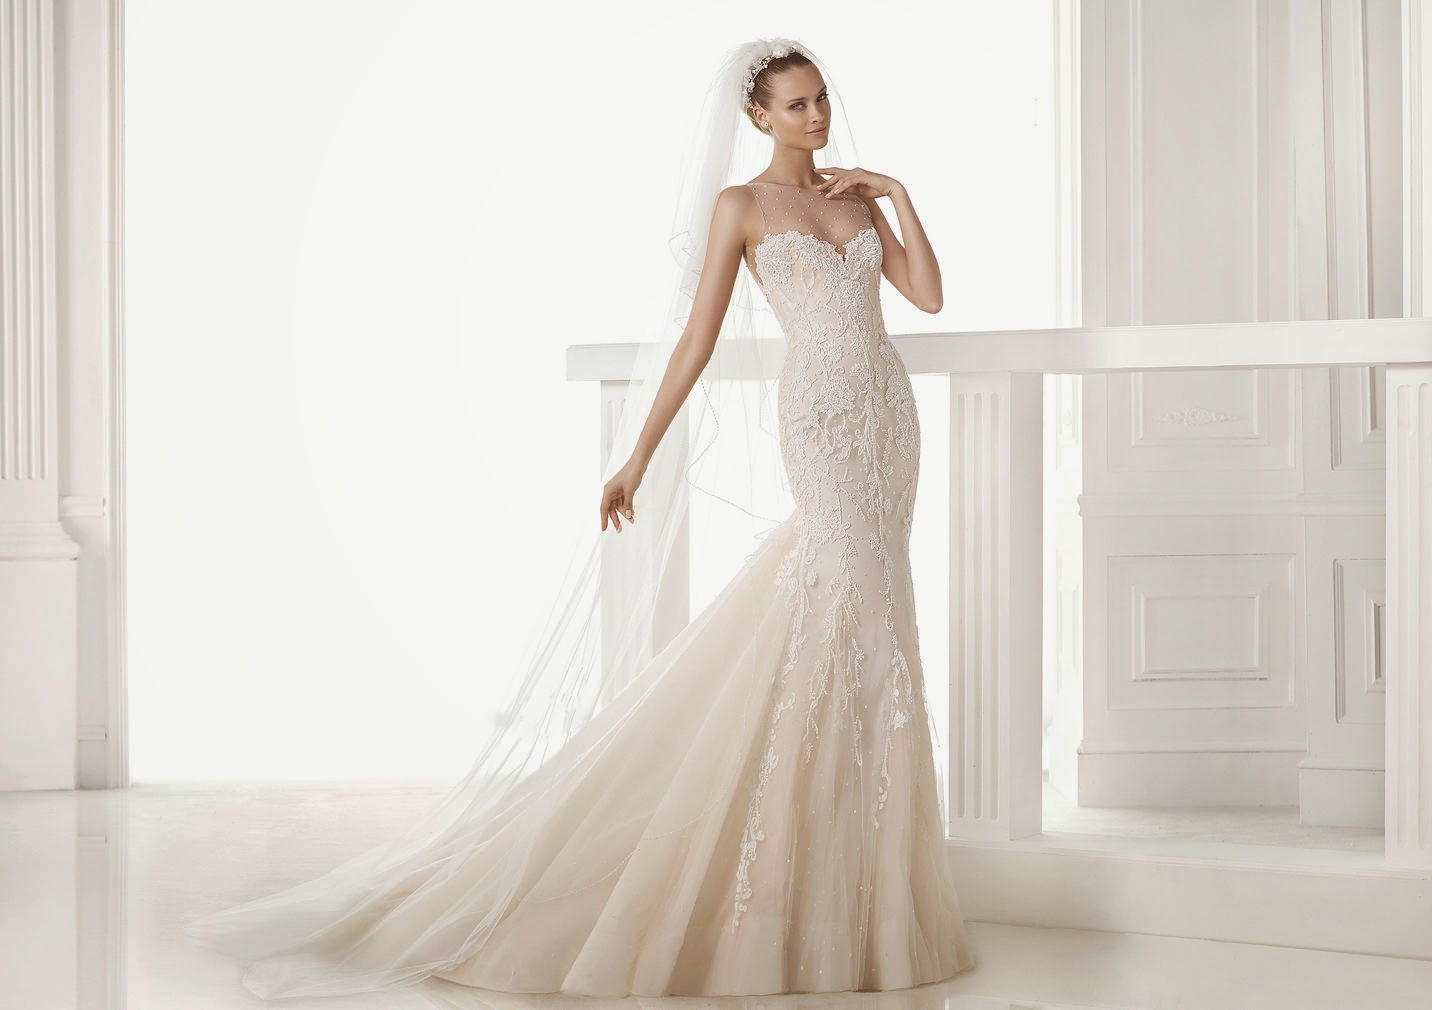 2015 Wedding Dresses: Lace Mermaid Gowns by Pronovias